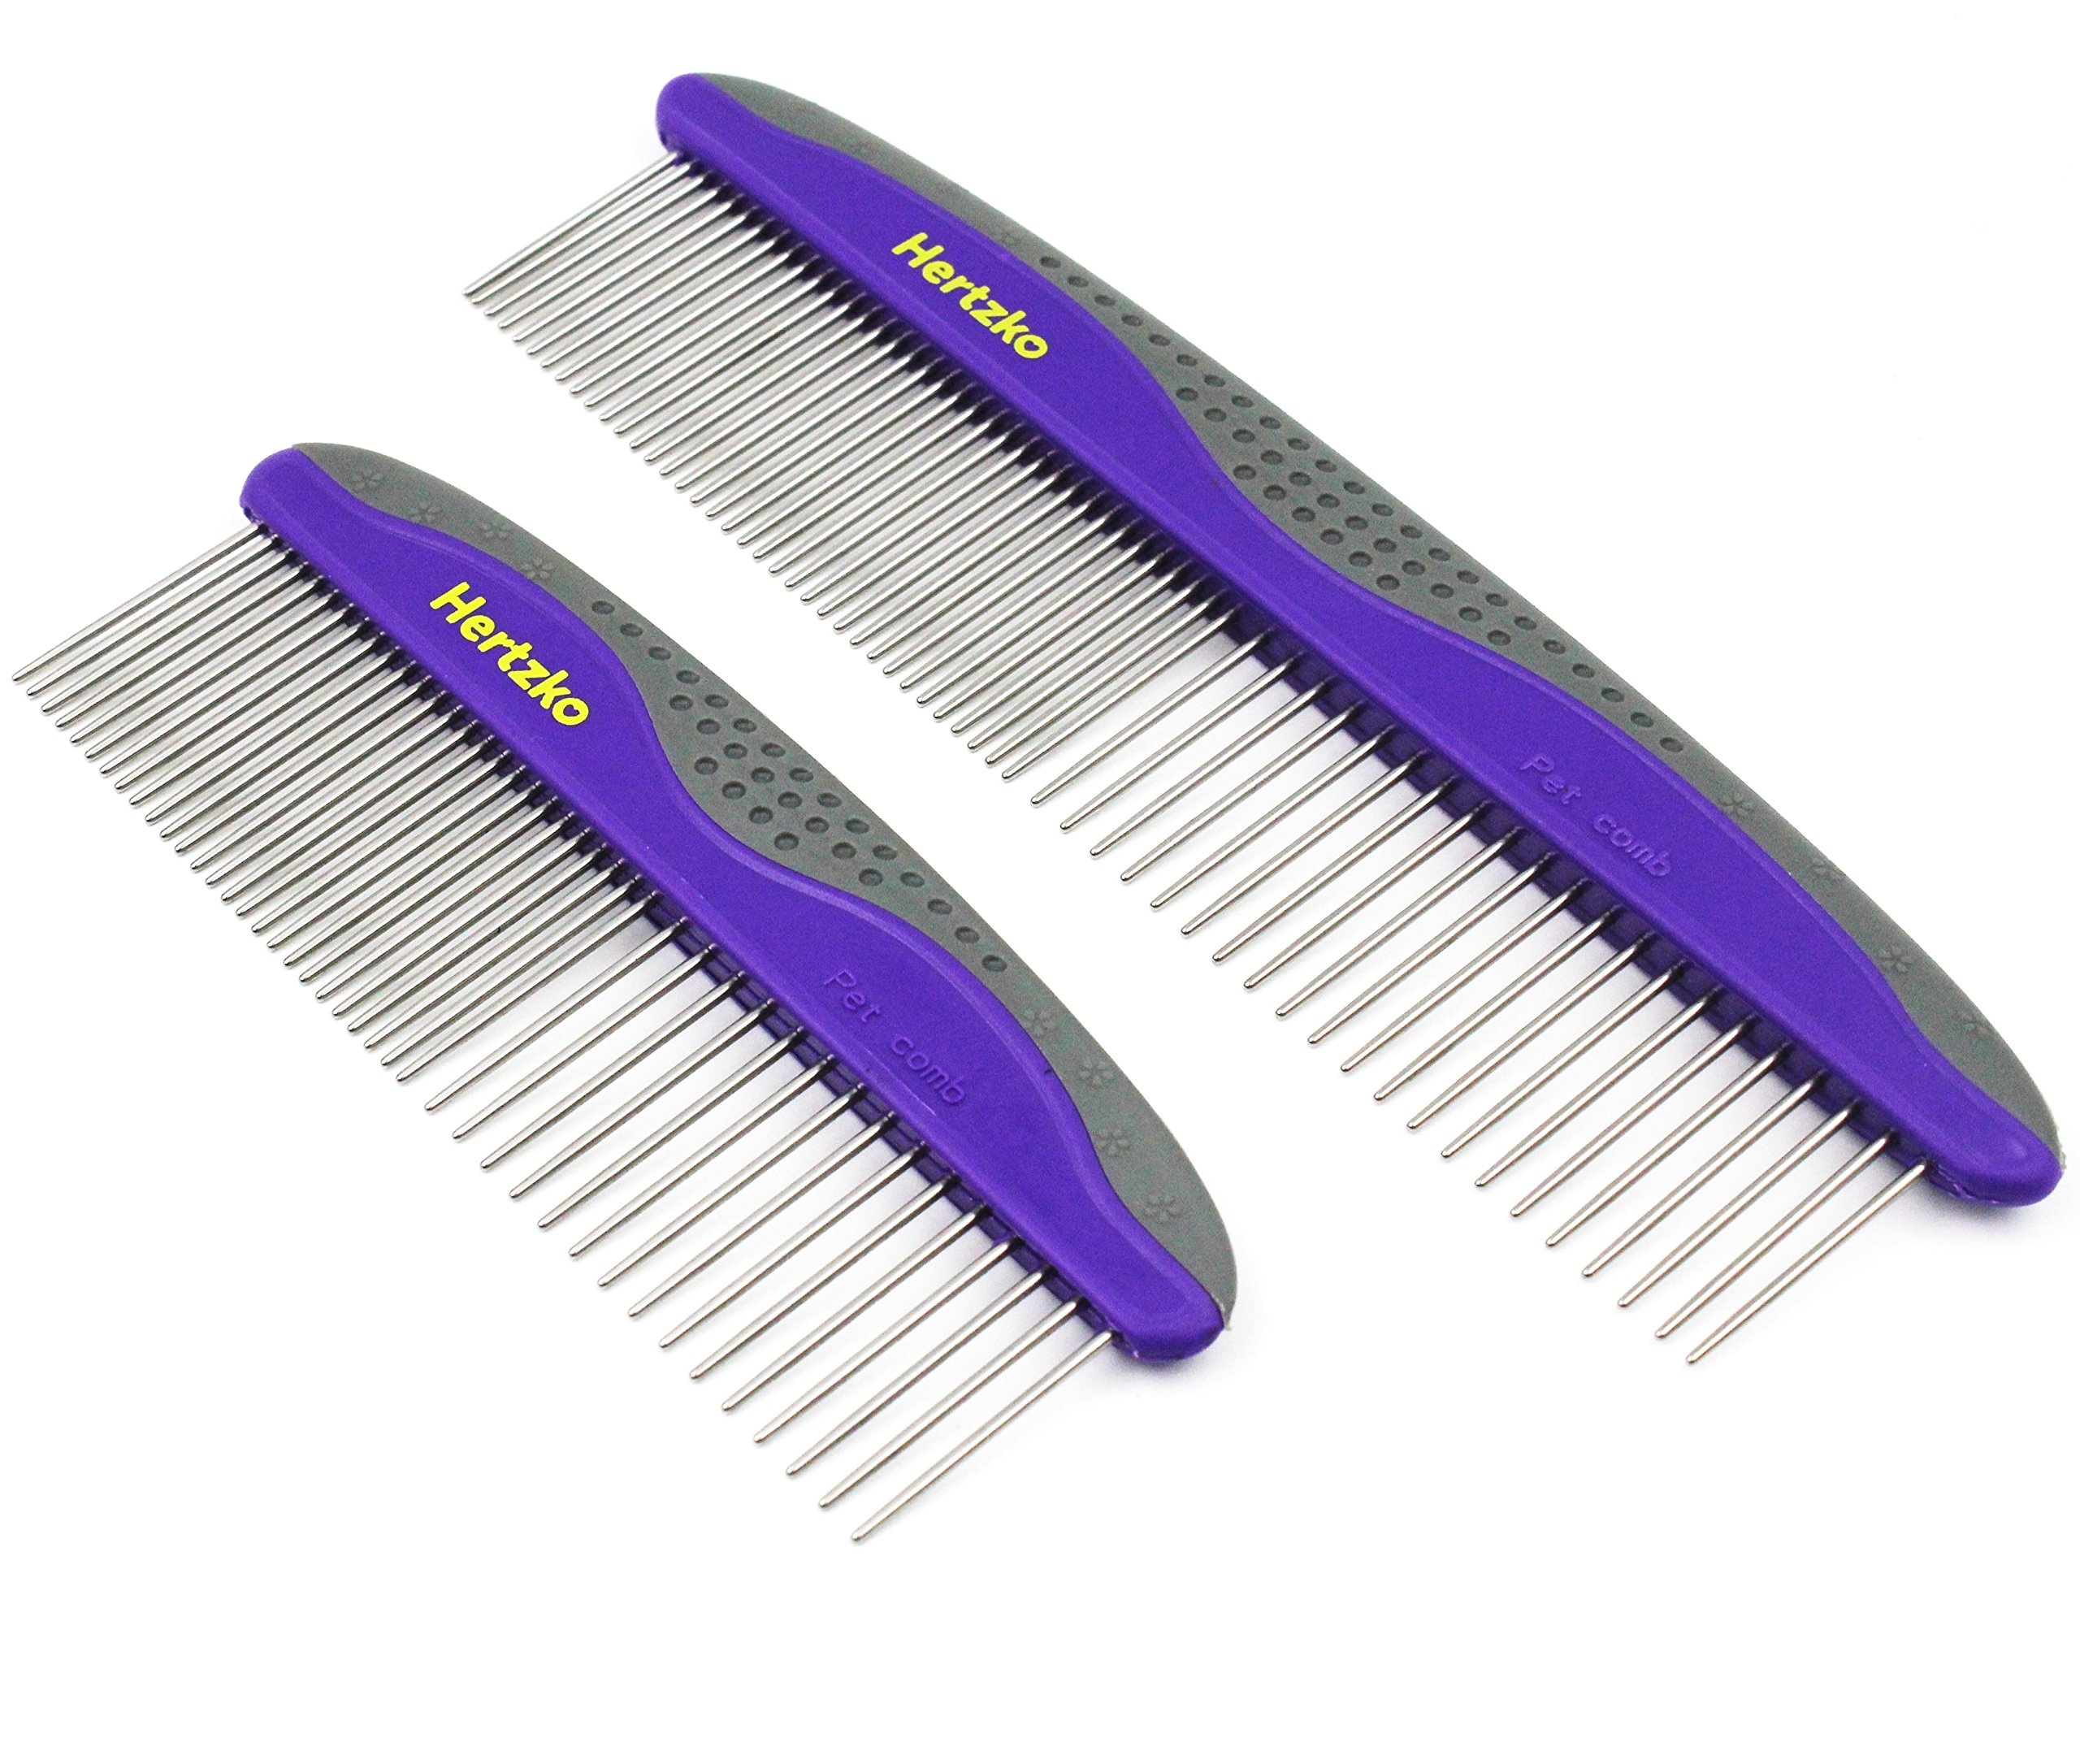 Hertzko 2 Pack Pet Combs by Small & Large Comb Included for Both Small & Large Areas -Removes Tangles, Knots, Loose Fur and Dirt. Ideal for Everyday Use for Dogs and Cats with Short or Long Hair